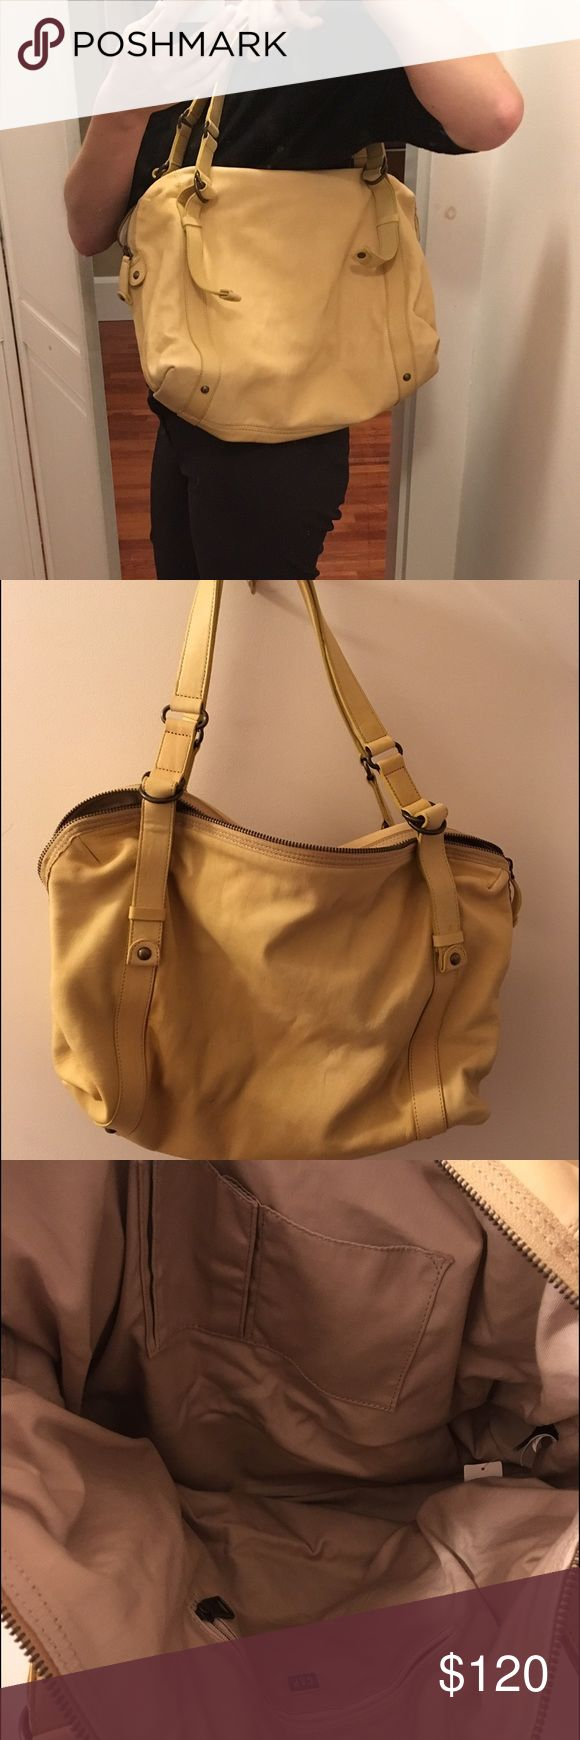 NWT Gap handbag New with tags Gap mustard yellow colored handbag. Never used. GAP Bags